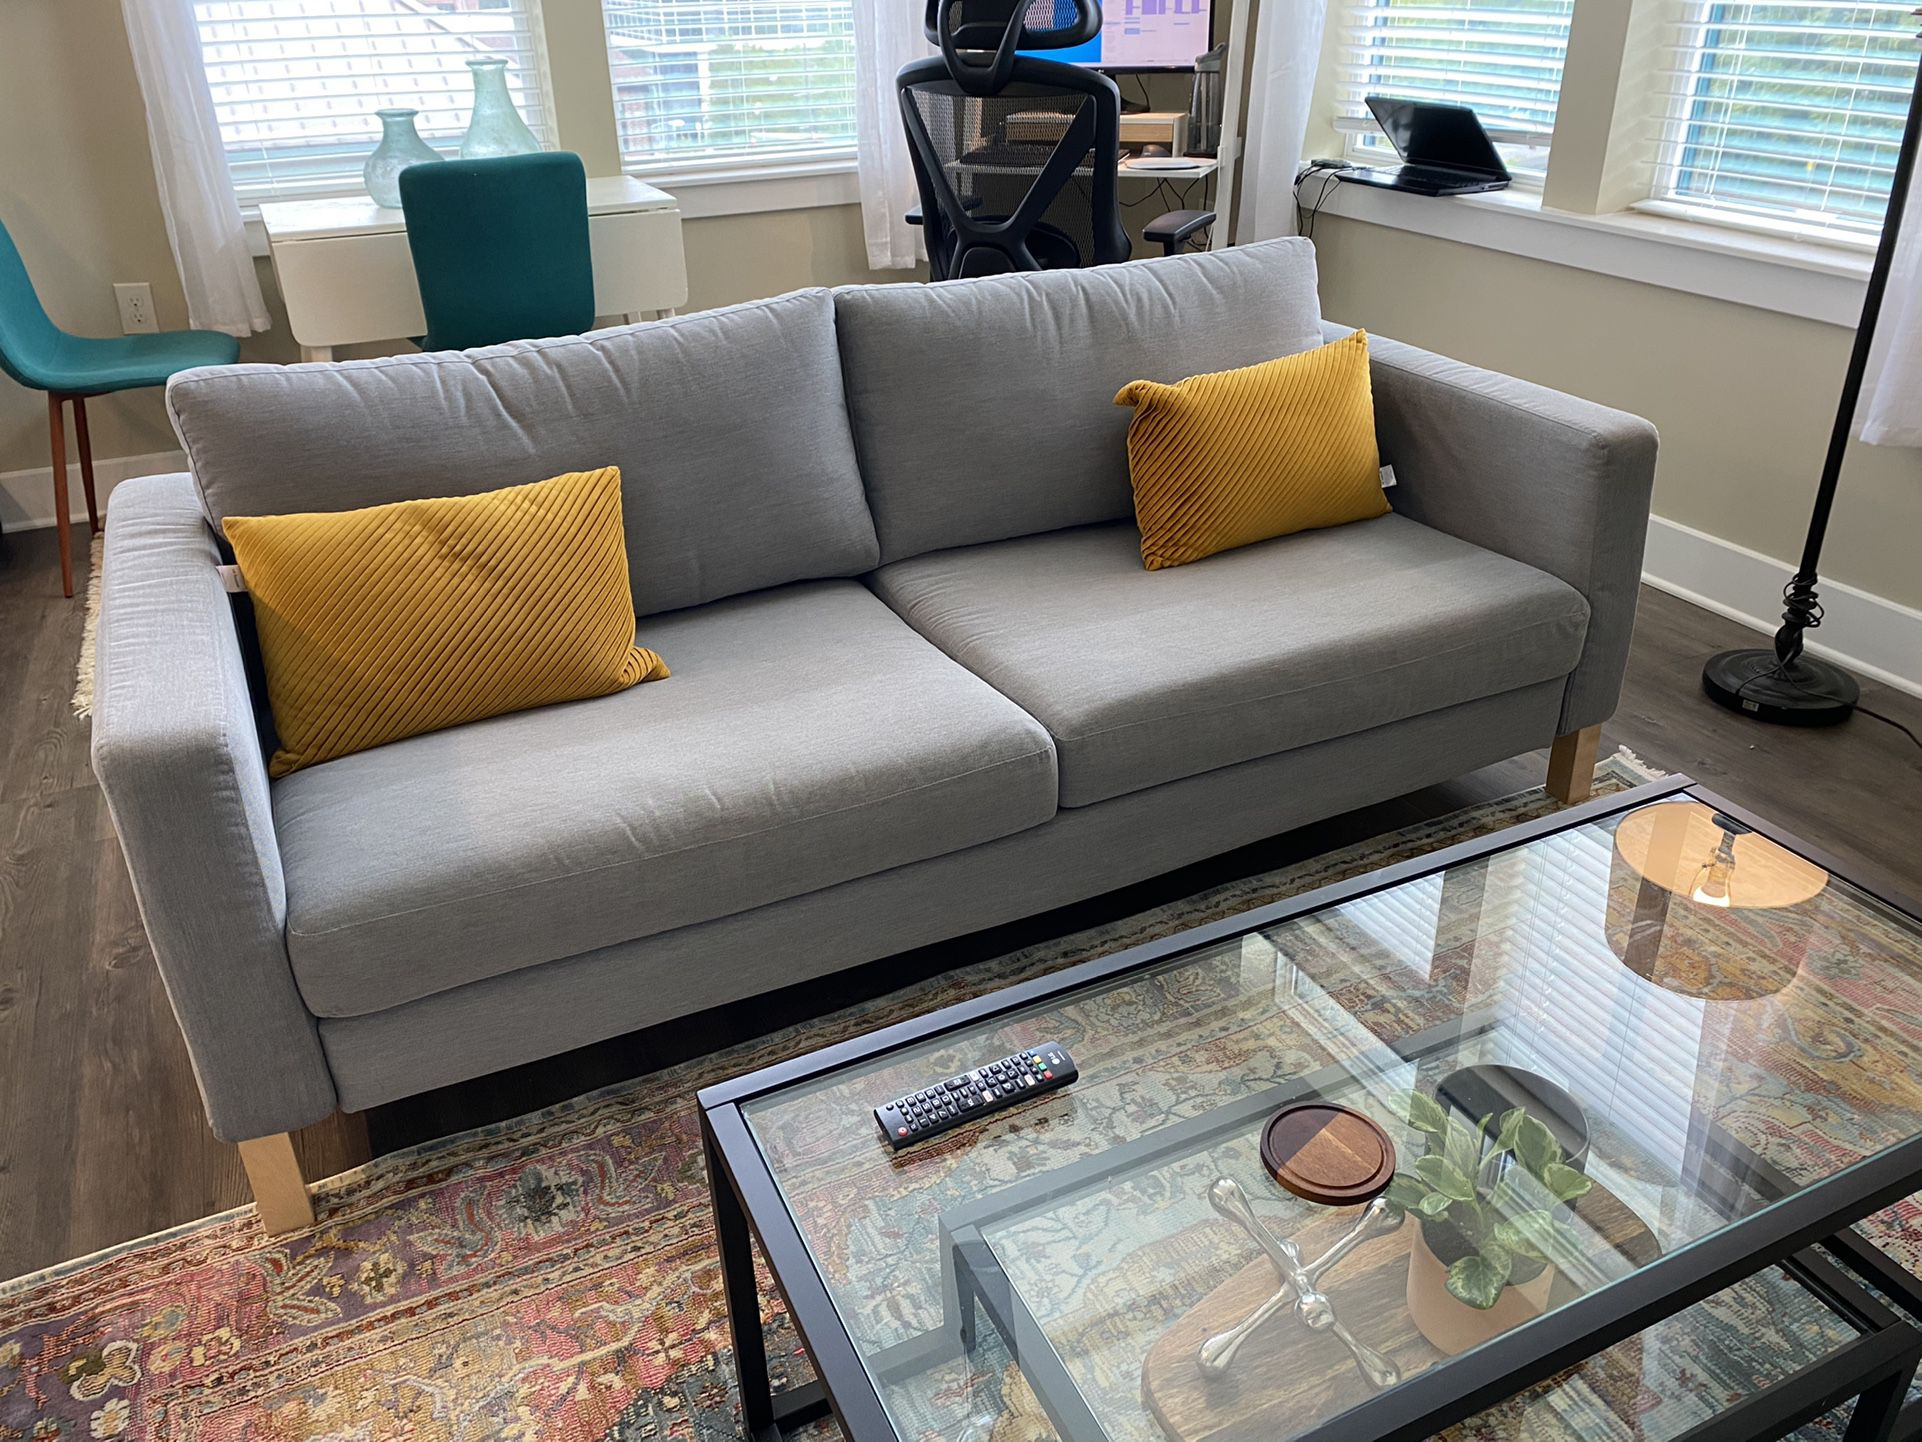 Selling Modern, Beautiful, Comfortable Couch